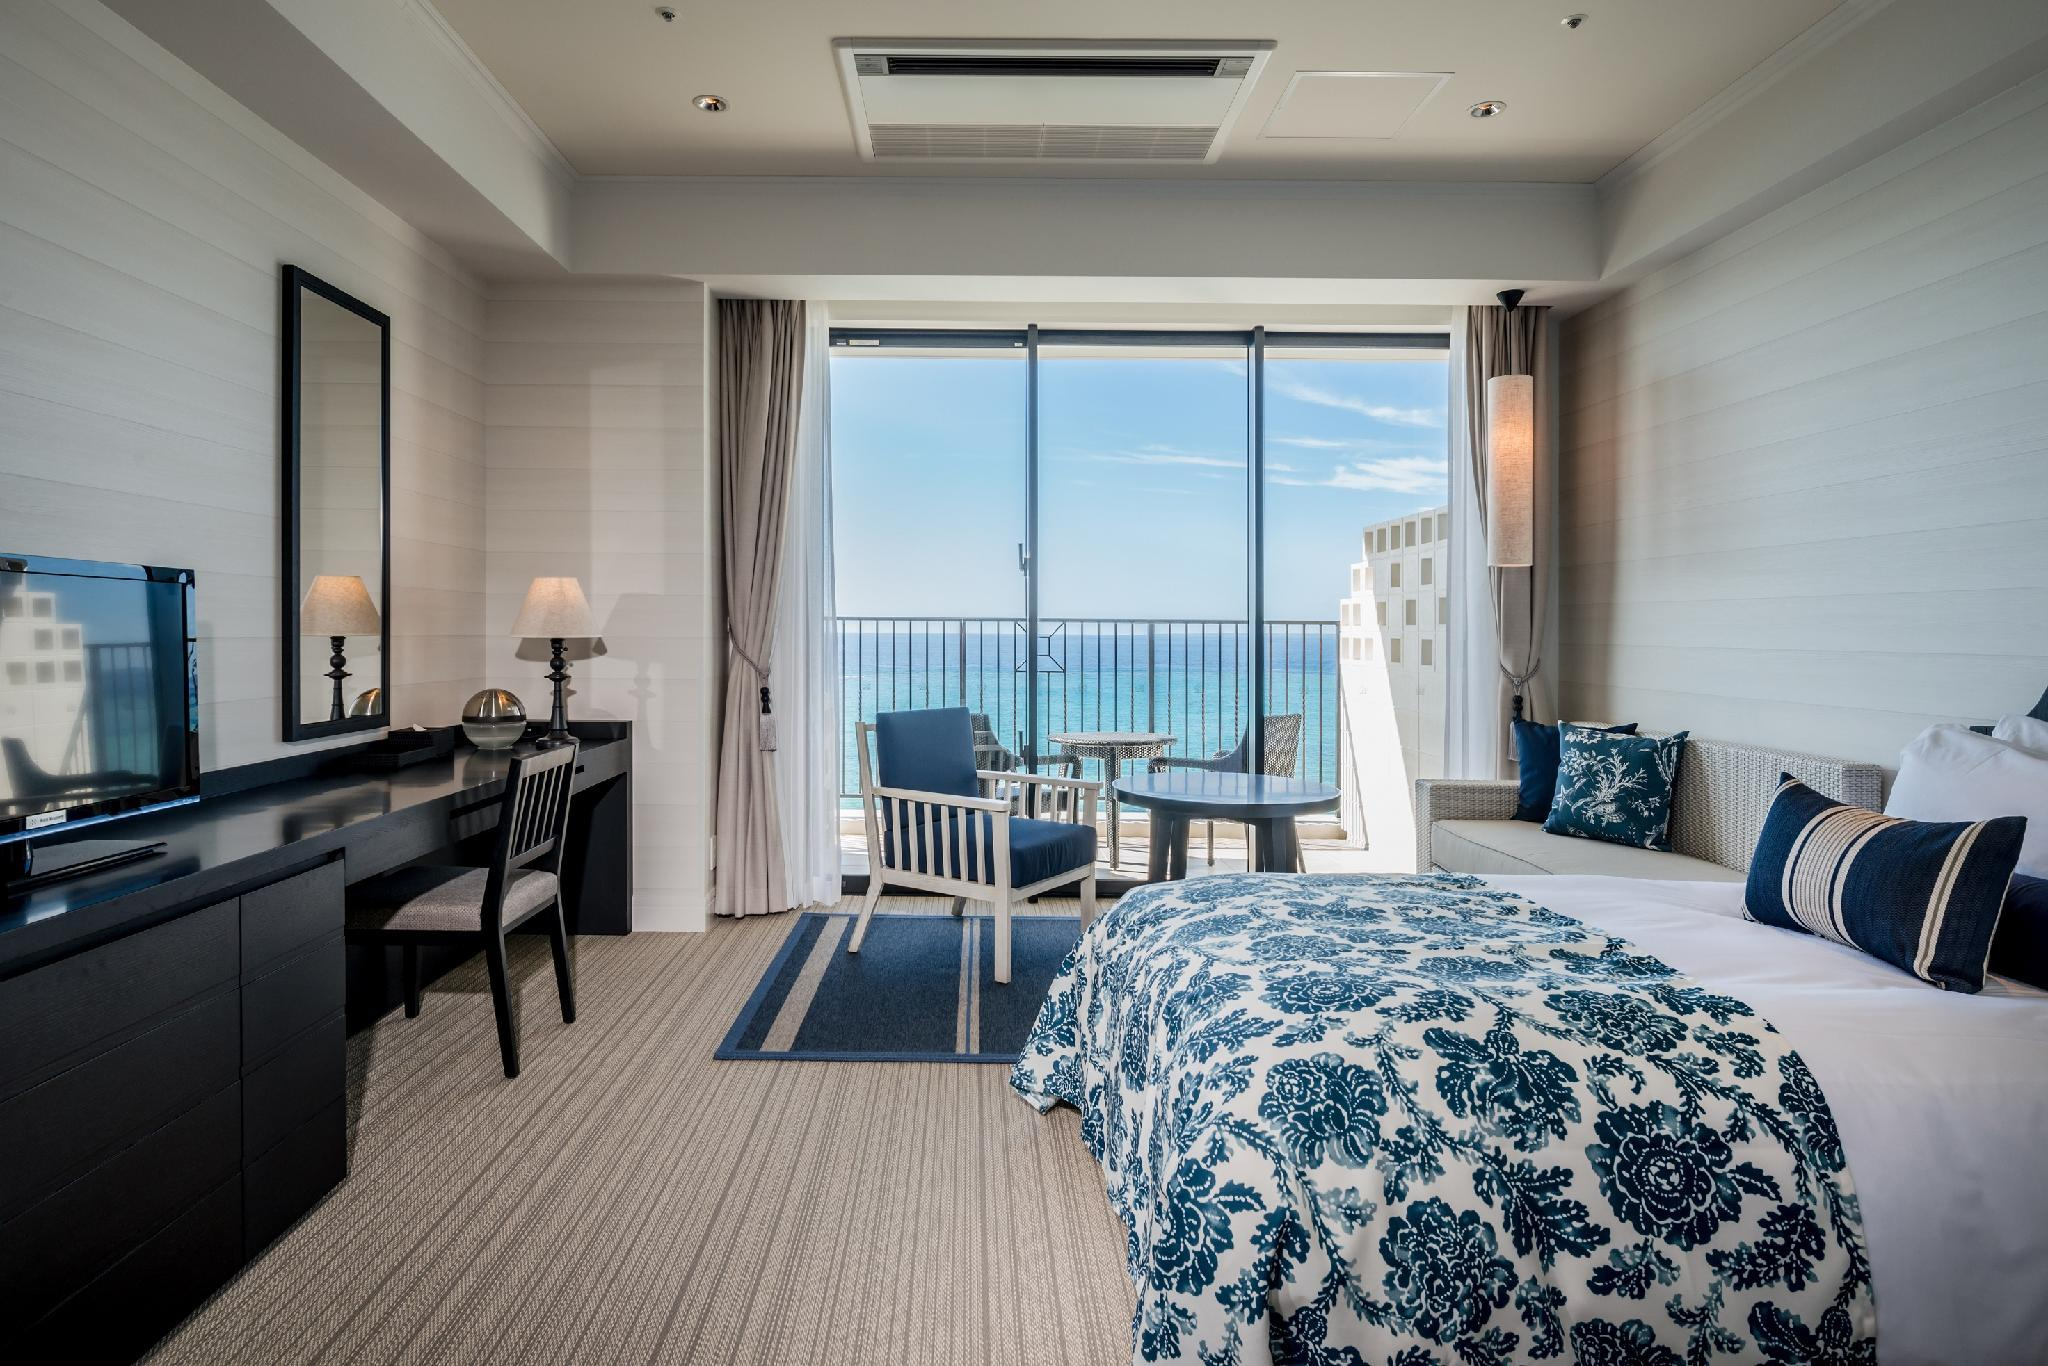 Club Standard Ocean View Twin Room for 4 People